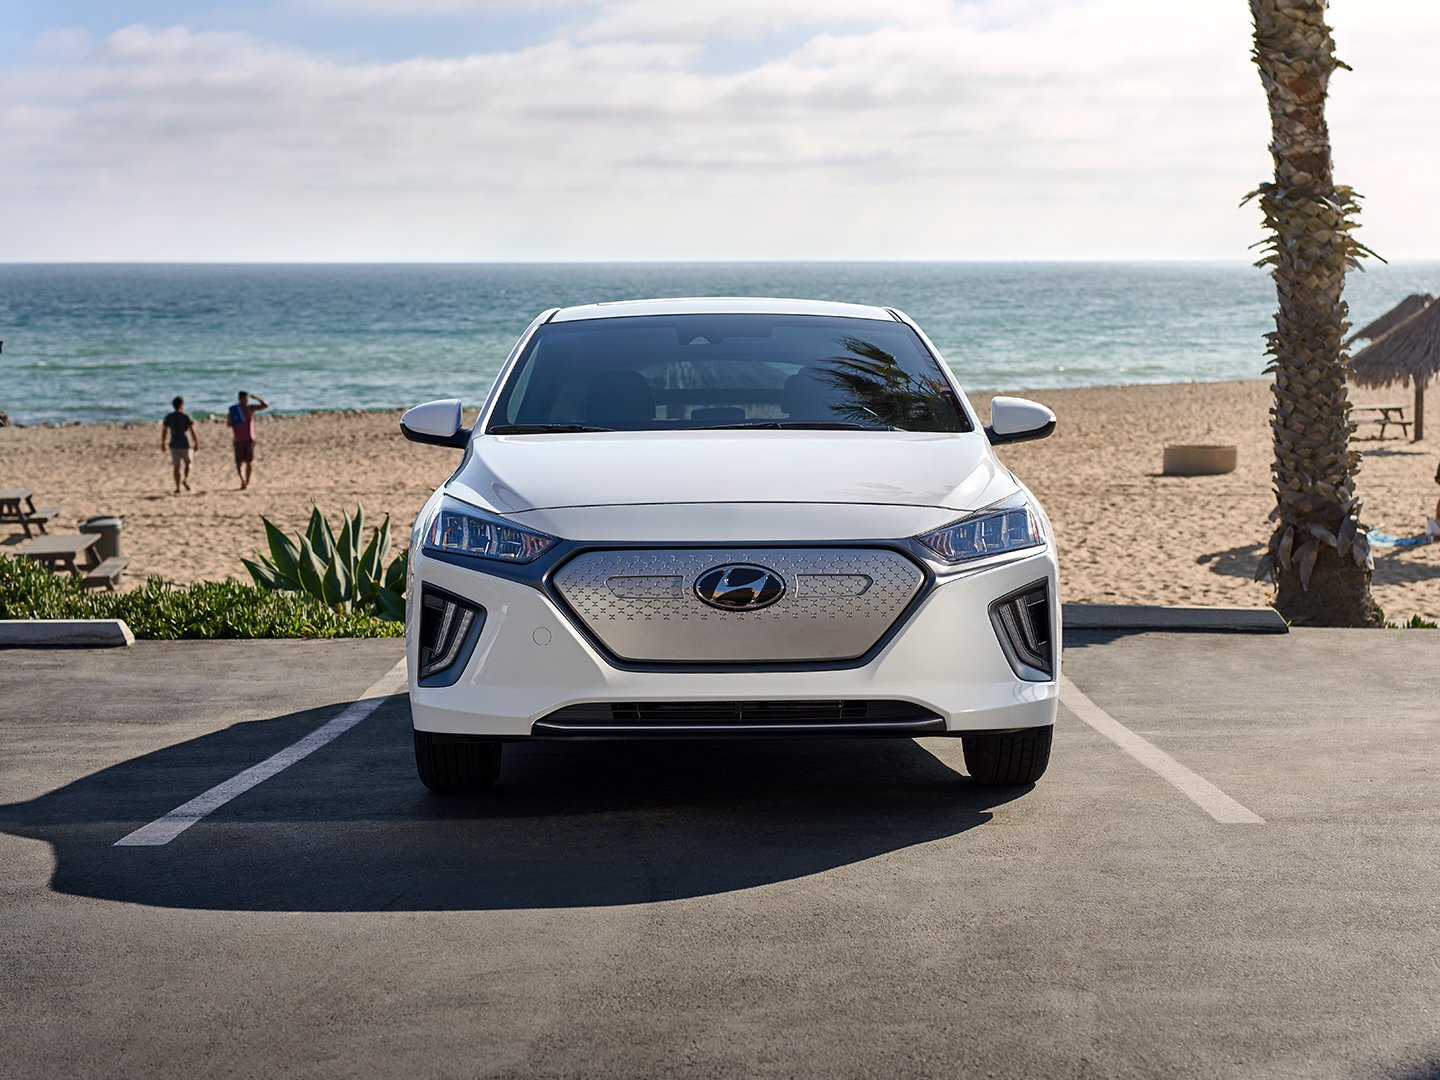 2020 Ioniq Electric at beach